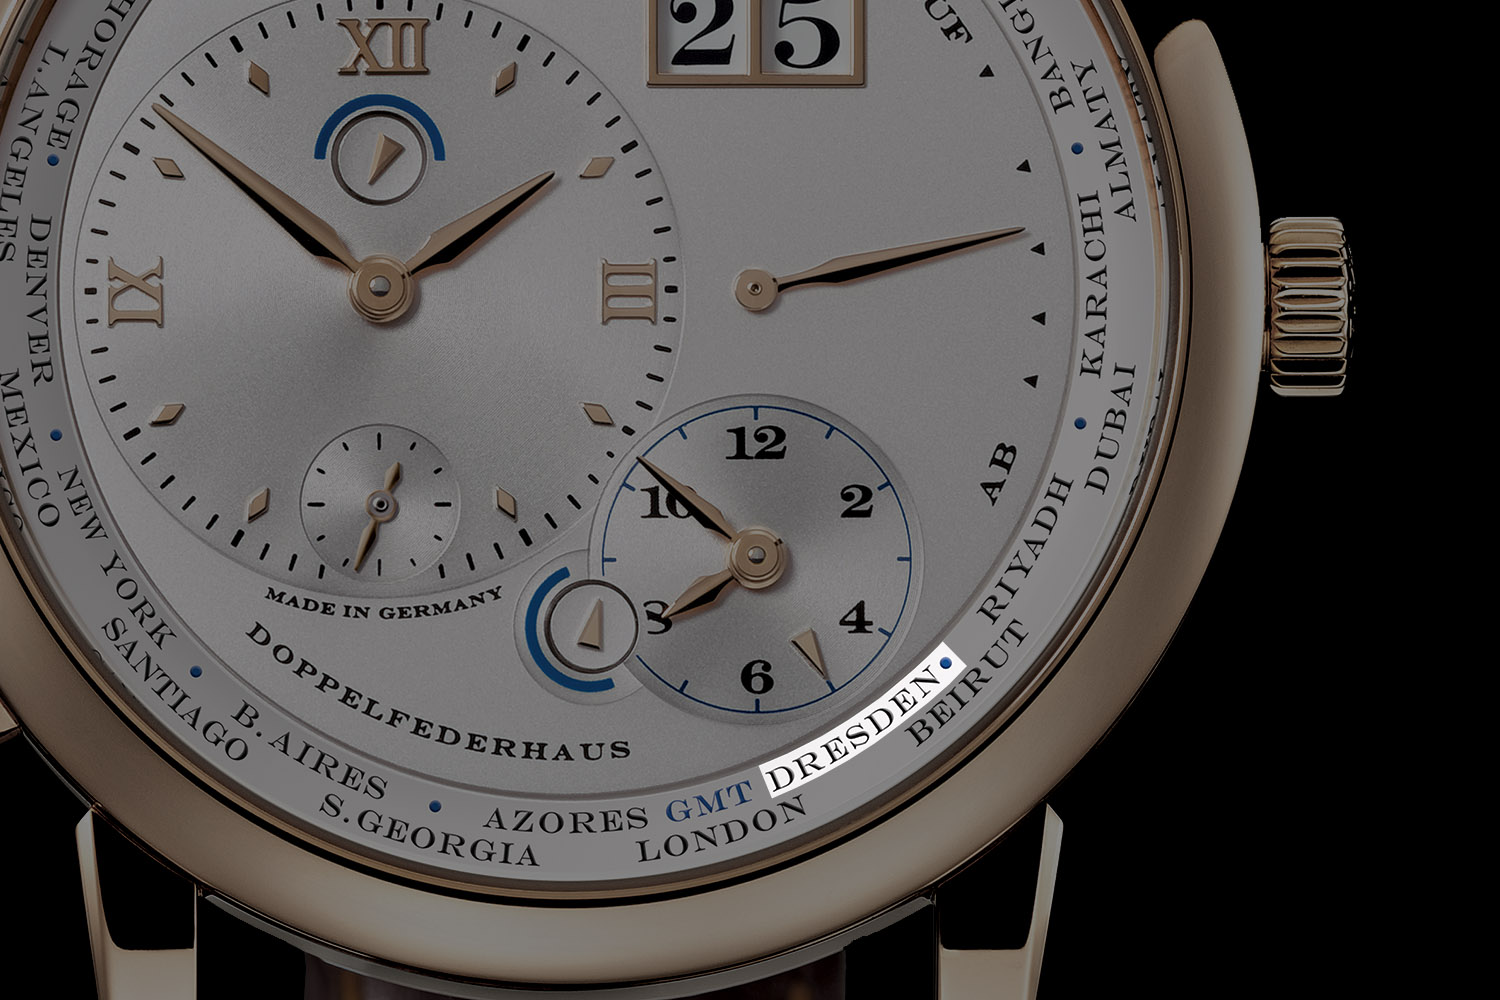 a-lange-sohne-lange-1-timezone-honey-gold-special-edition-dresden-dial-1